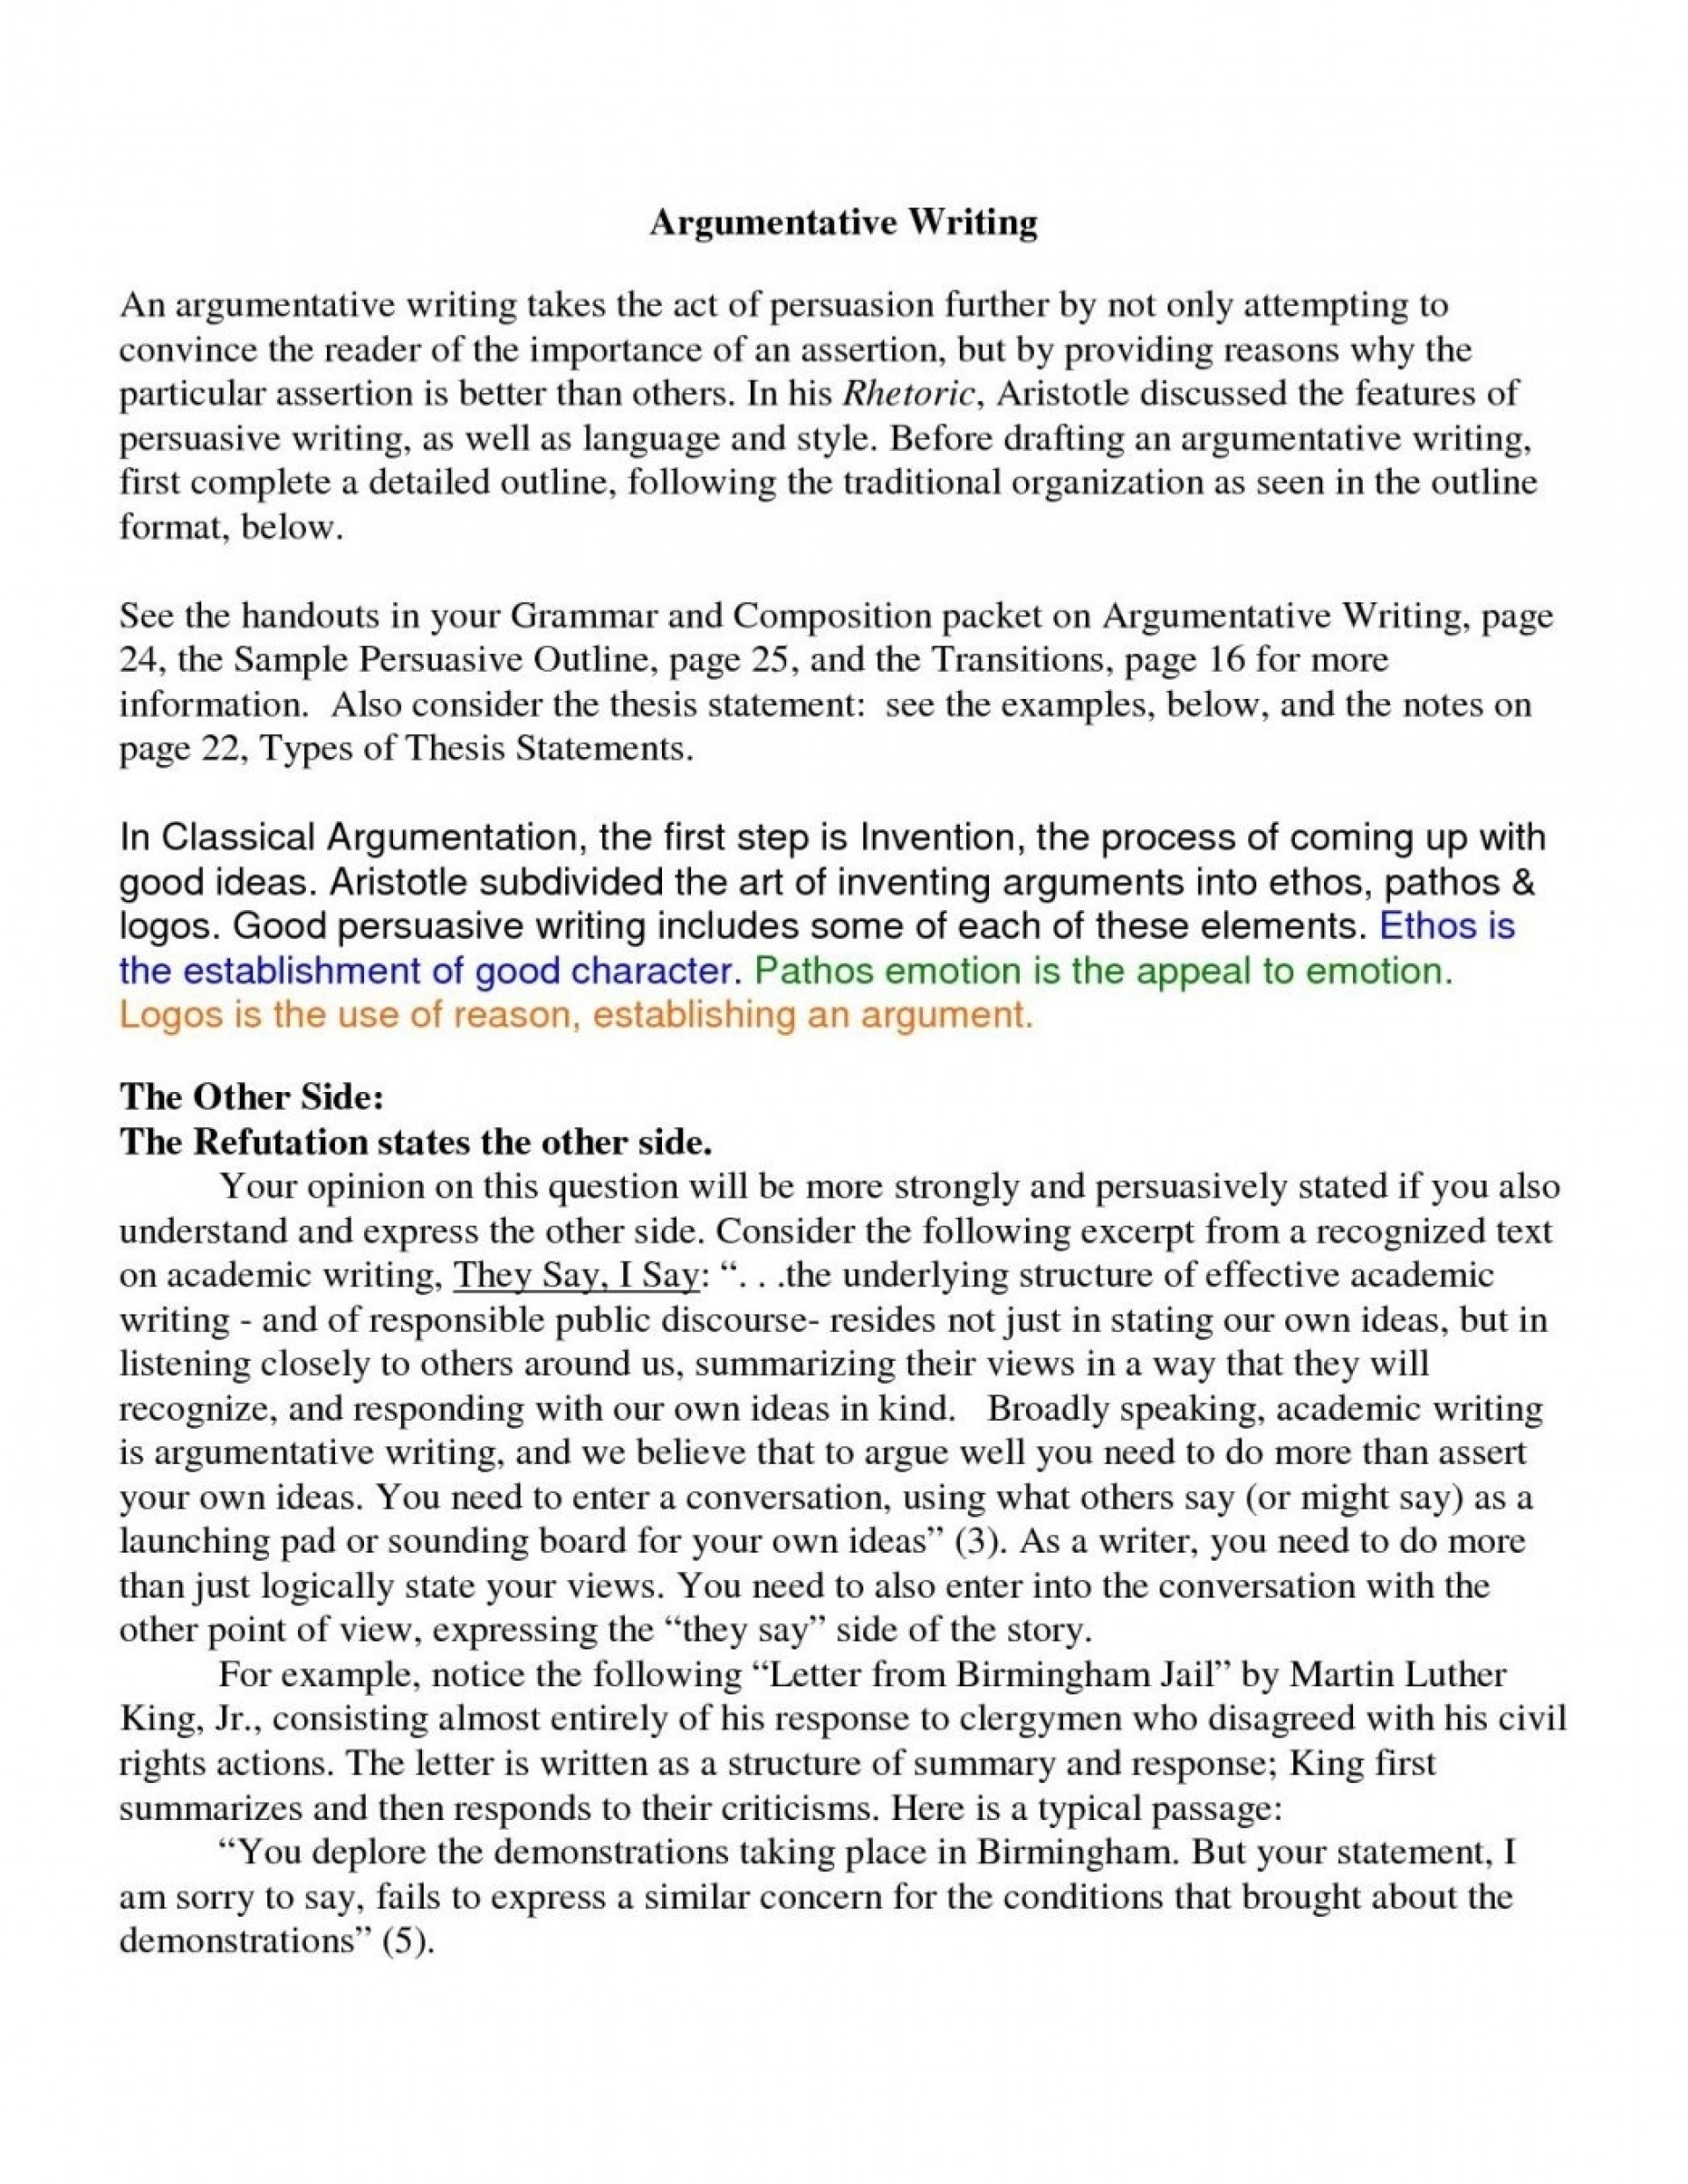 019 Argumentative Essay Samples For College Examples Of Persuasive Inside Level Example Awful Vs Are And Essays The Same Differentiate 1920